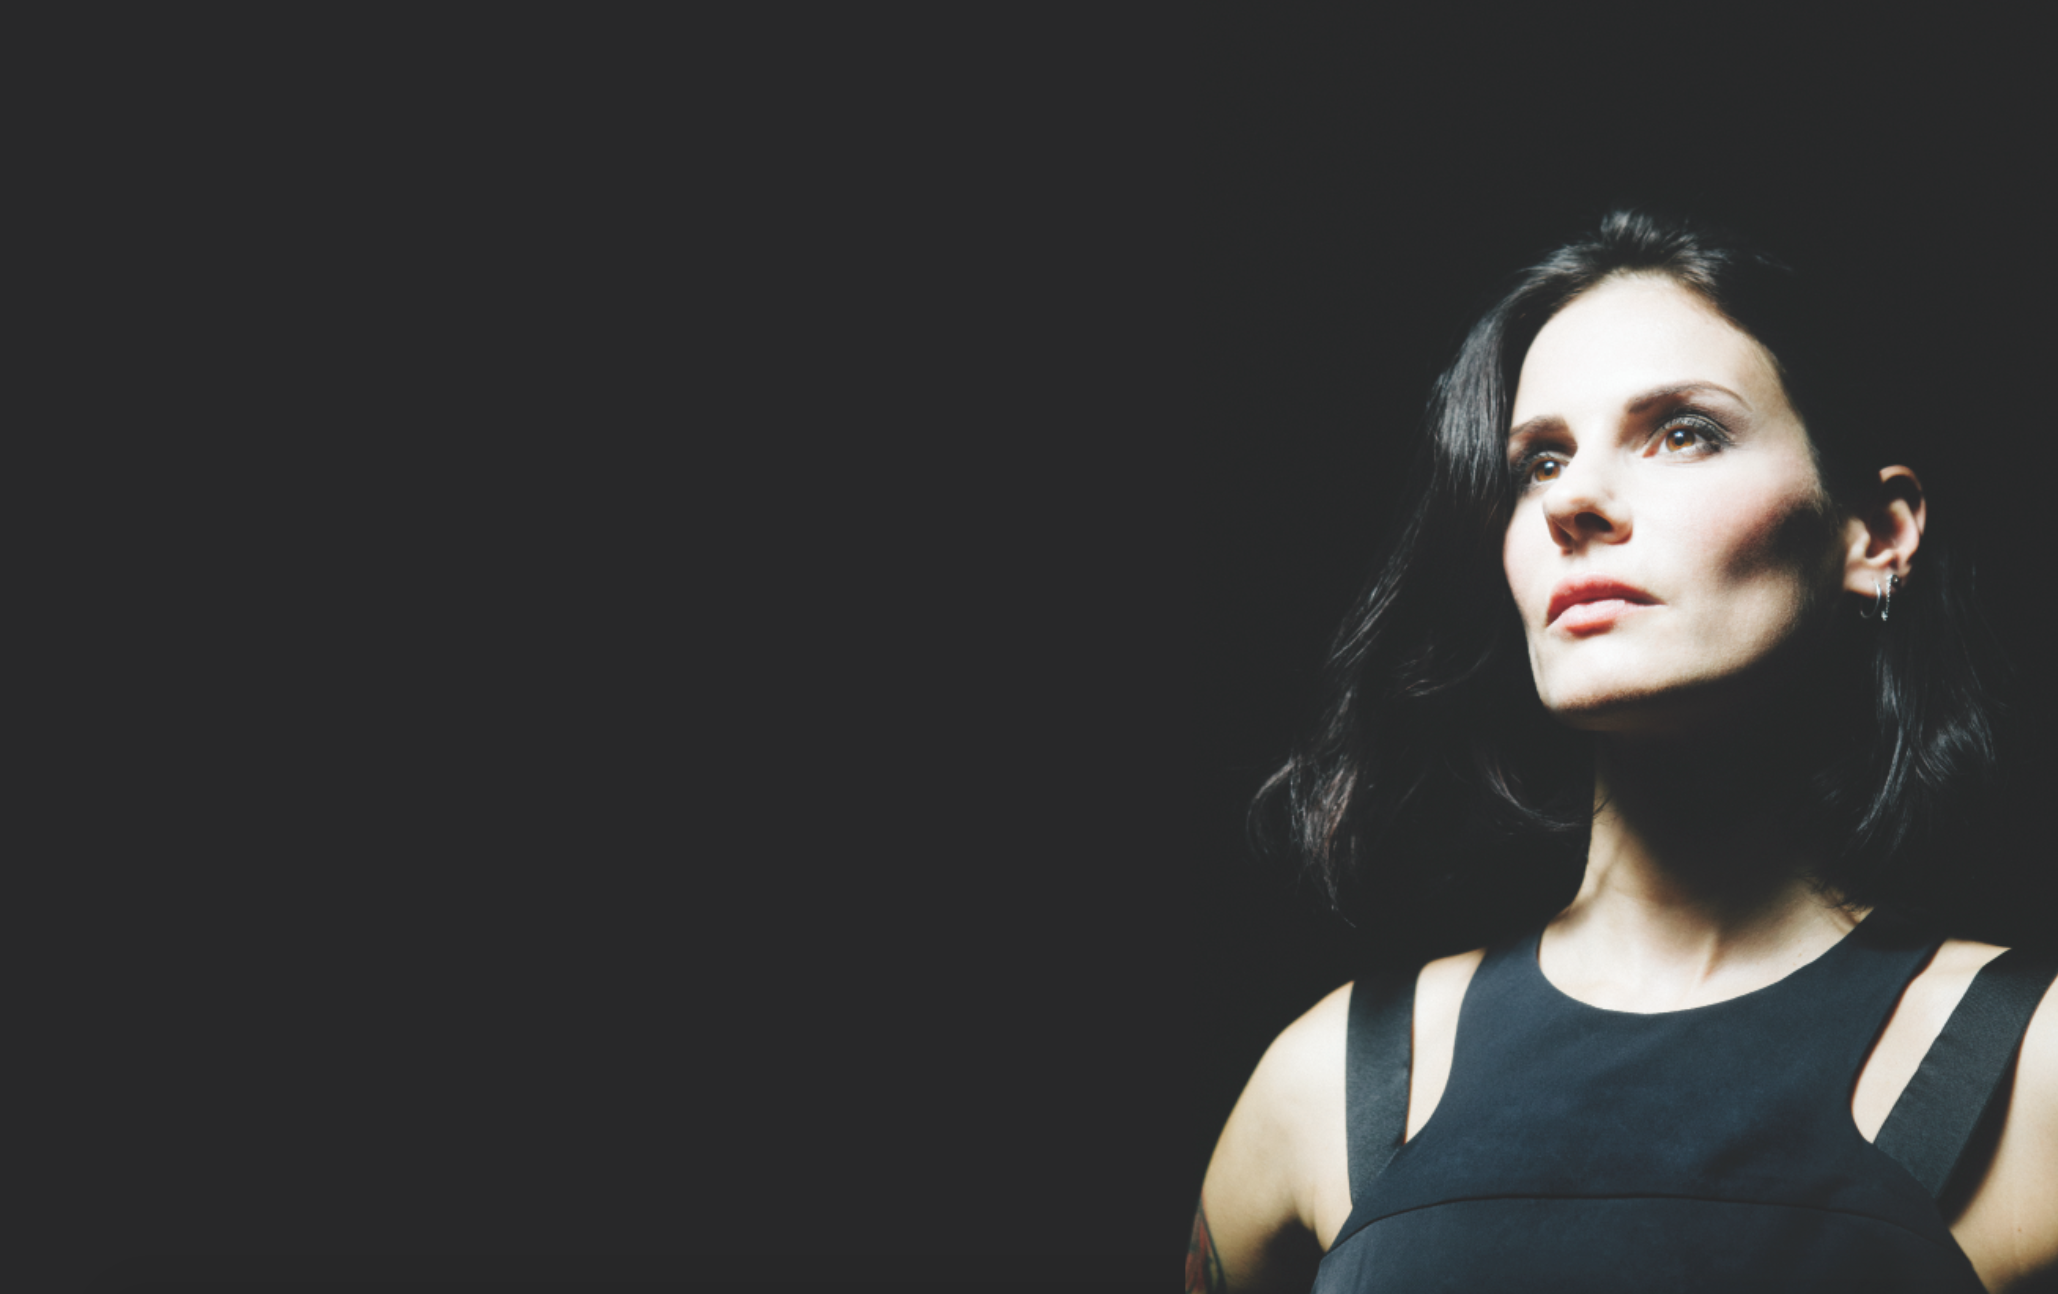 How Rebekah conquered her demons to become one of the most triumphant names in techno